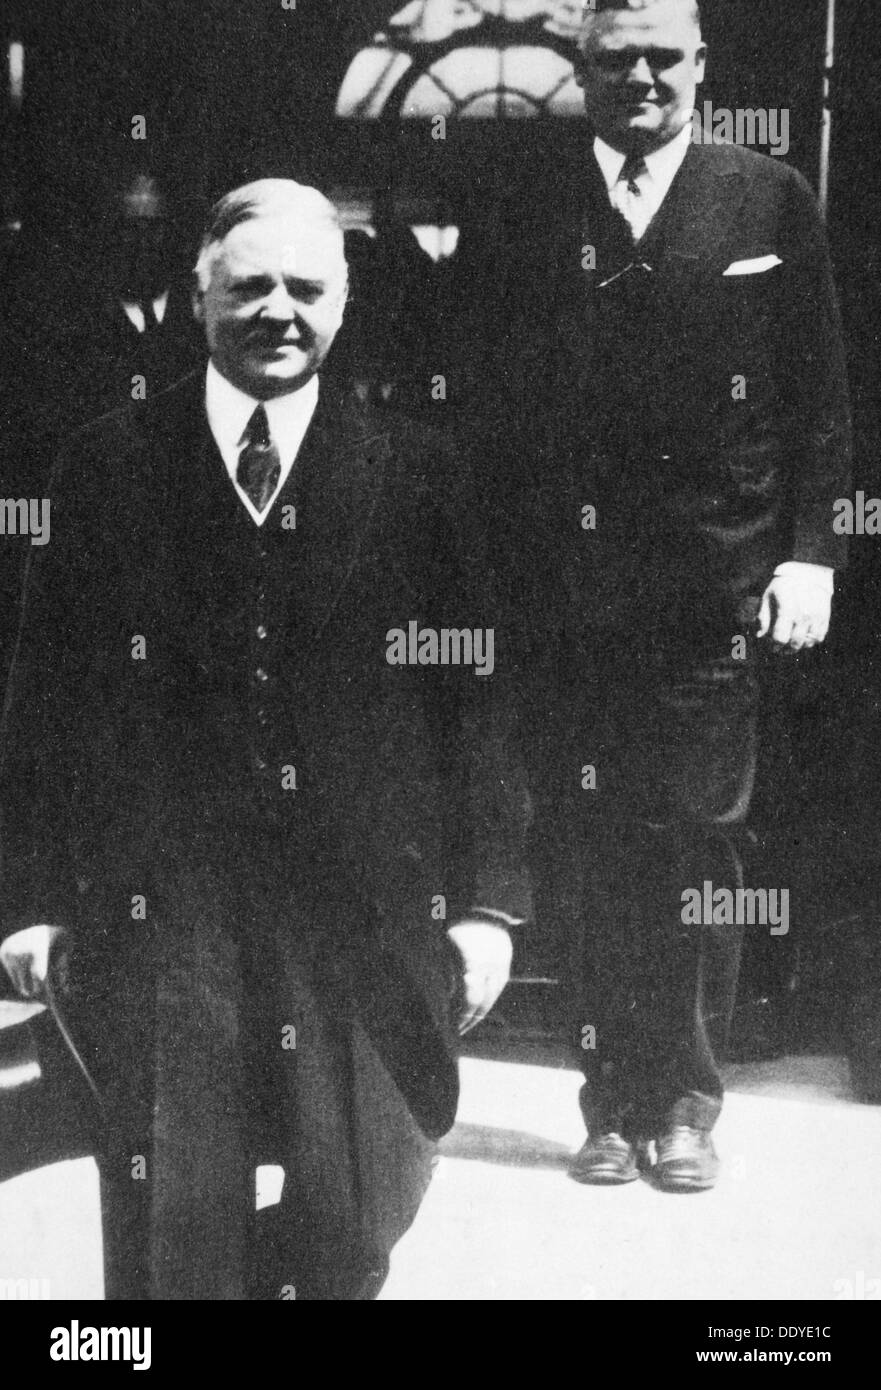 Herbert Hoover, 31st President of the United States, 1930s. Artist: Unknown Stock Photo